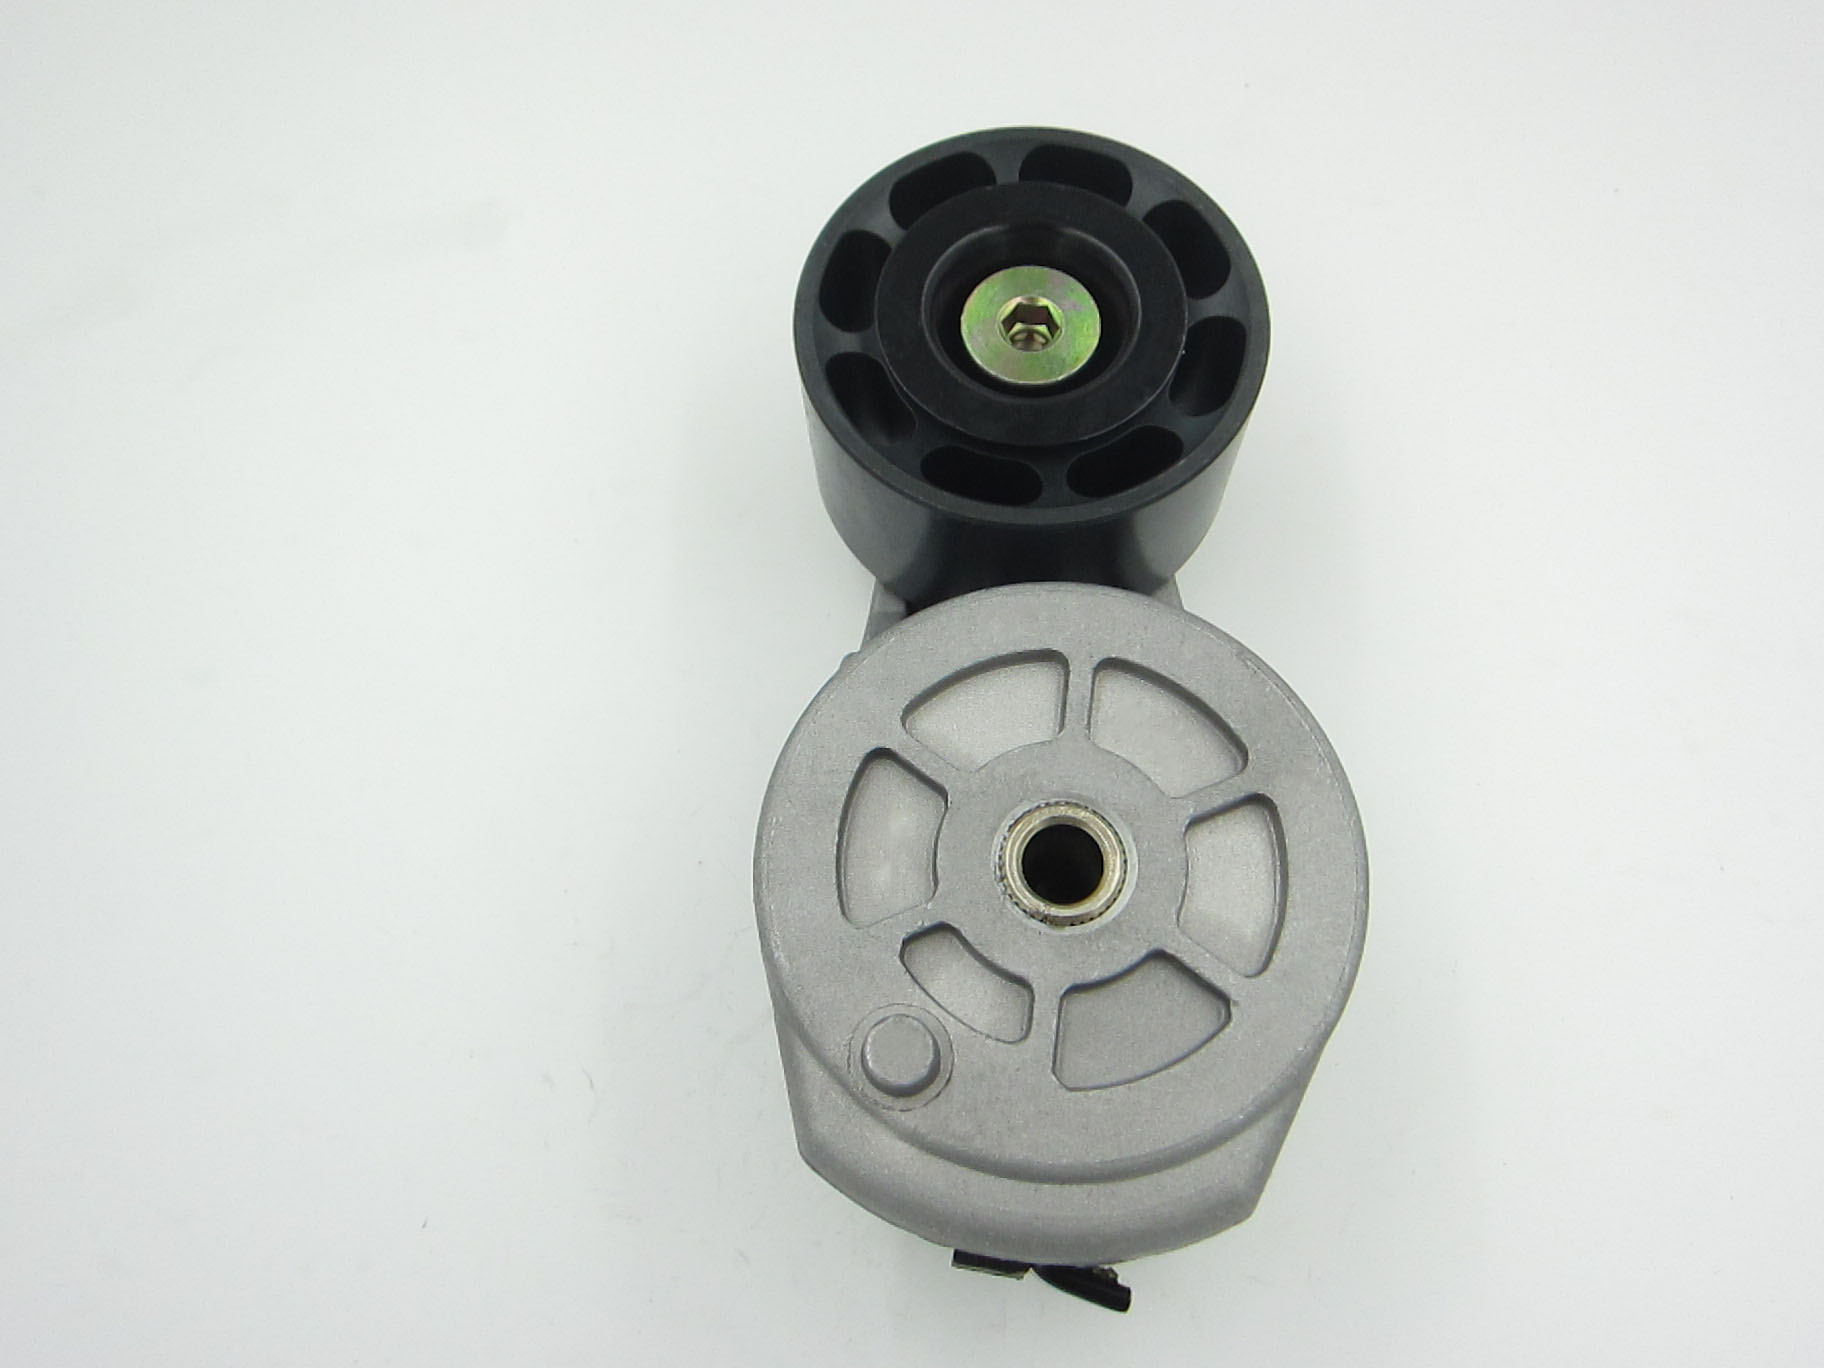 RE184034 2028958-C93 3543883-C1  AH155348 Fits for John Deere Belt Tensioner